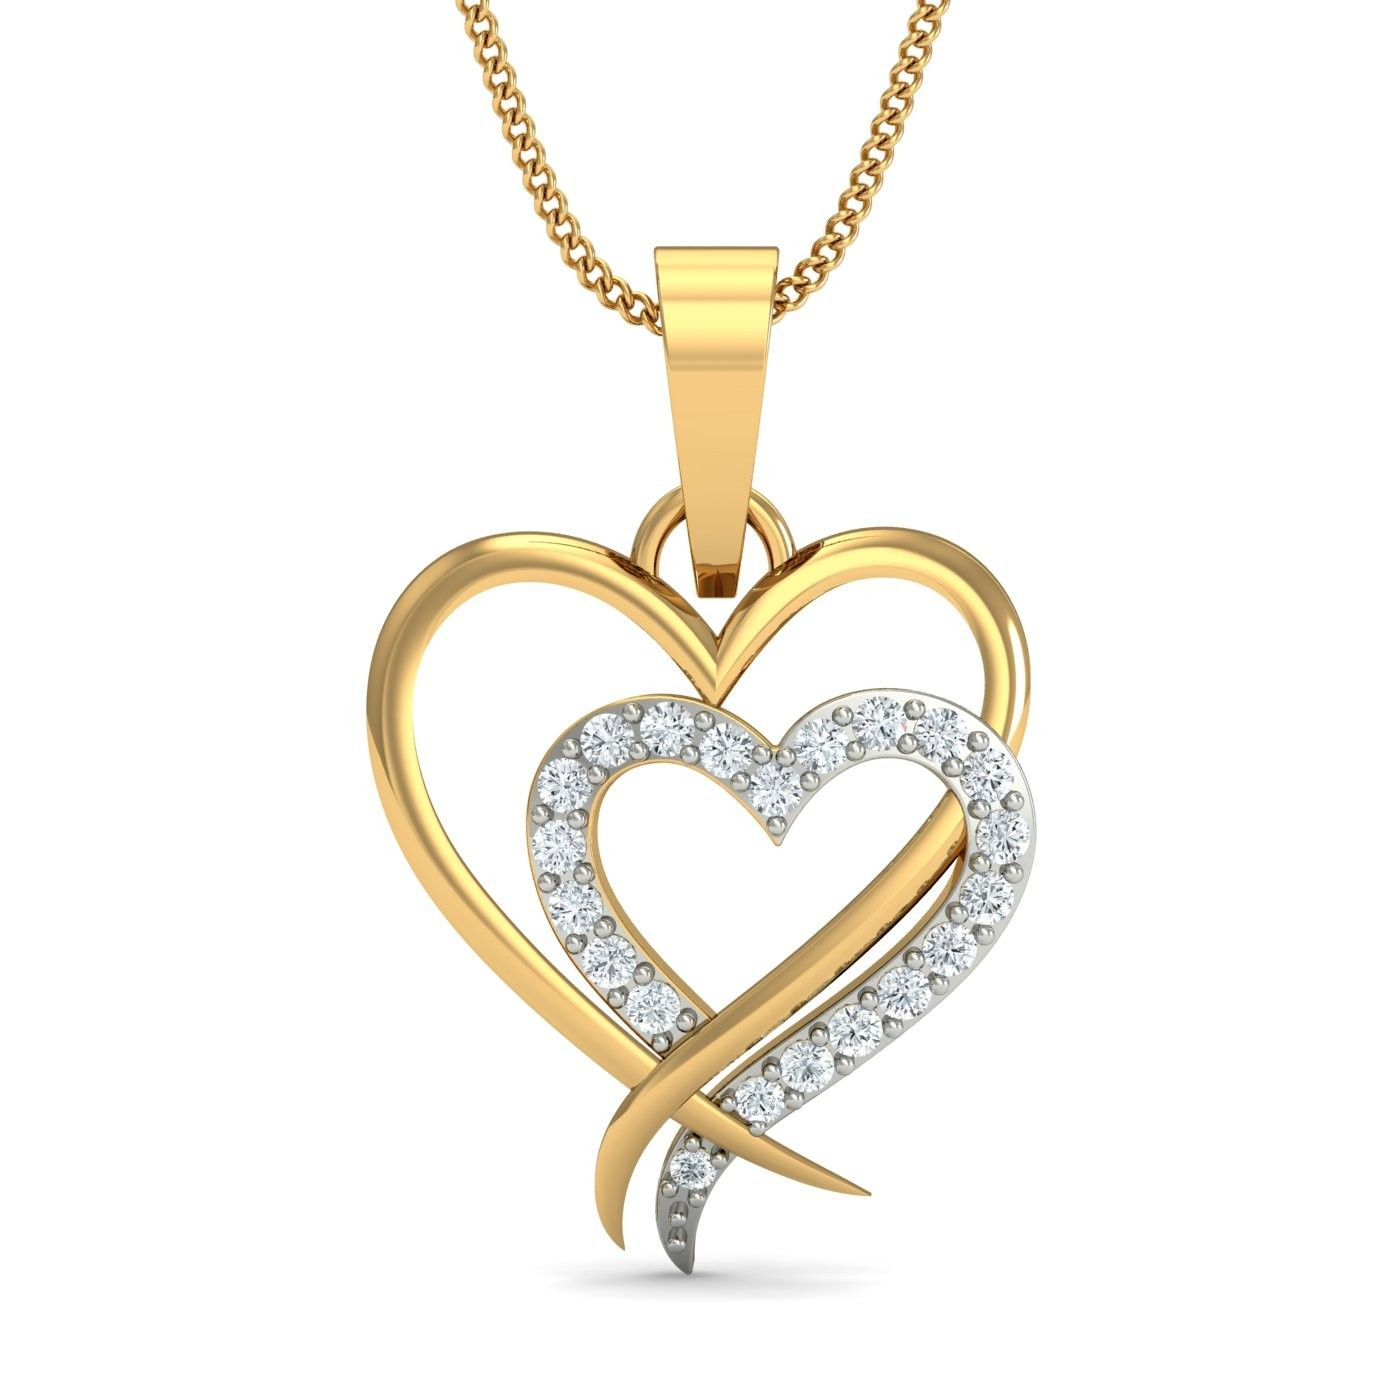 Gold heart pendant online shopping india 30 days returns gold heart pendant online shopping india 30 days returns hallmarked certified jewellery aloadofball Gallery